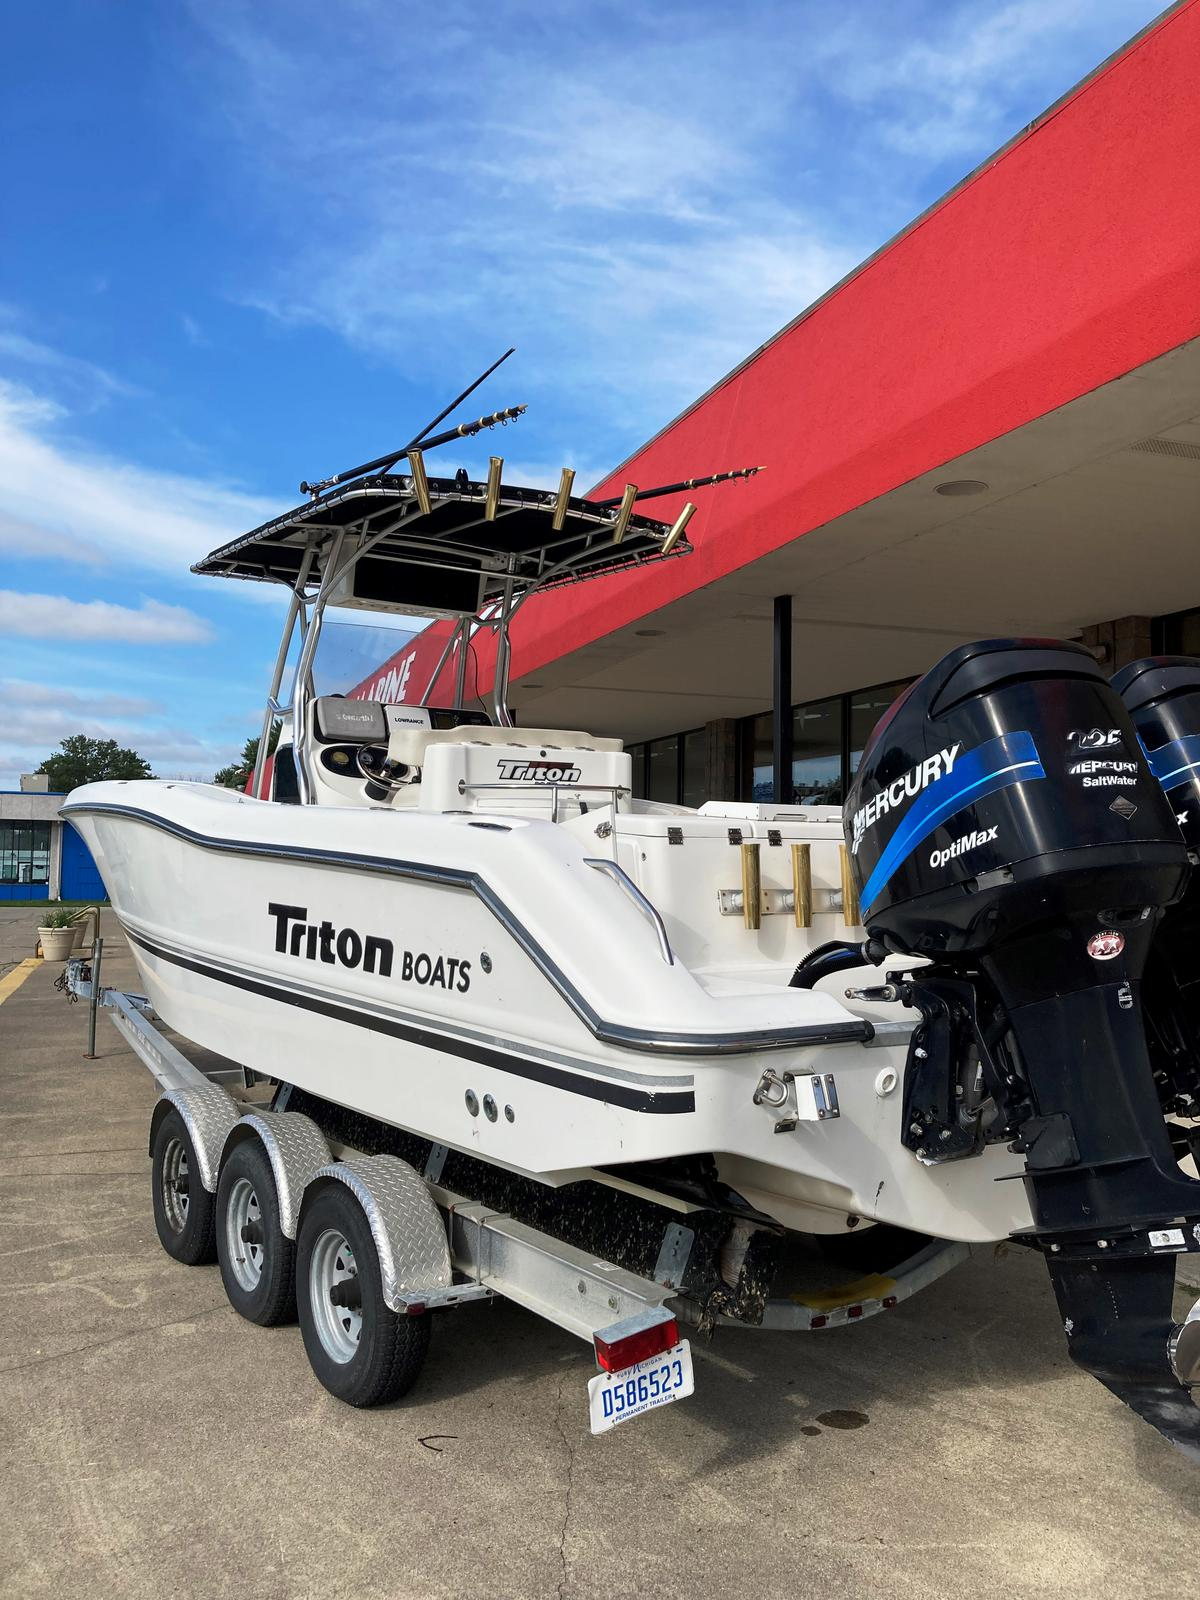 2002 Triton boat for sale, model of the boat is 2700 & Image # 2 of 7